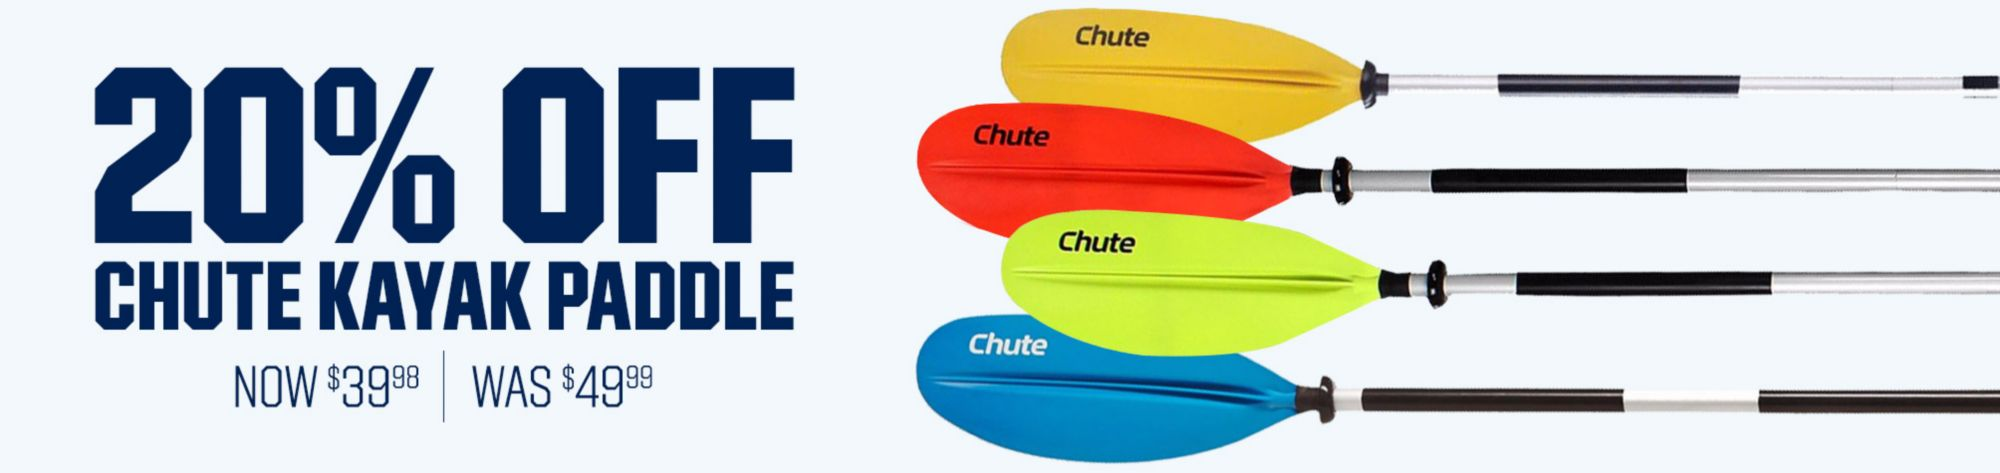 Shop Chute Kayak Paddles